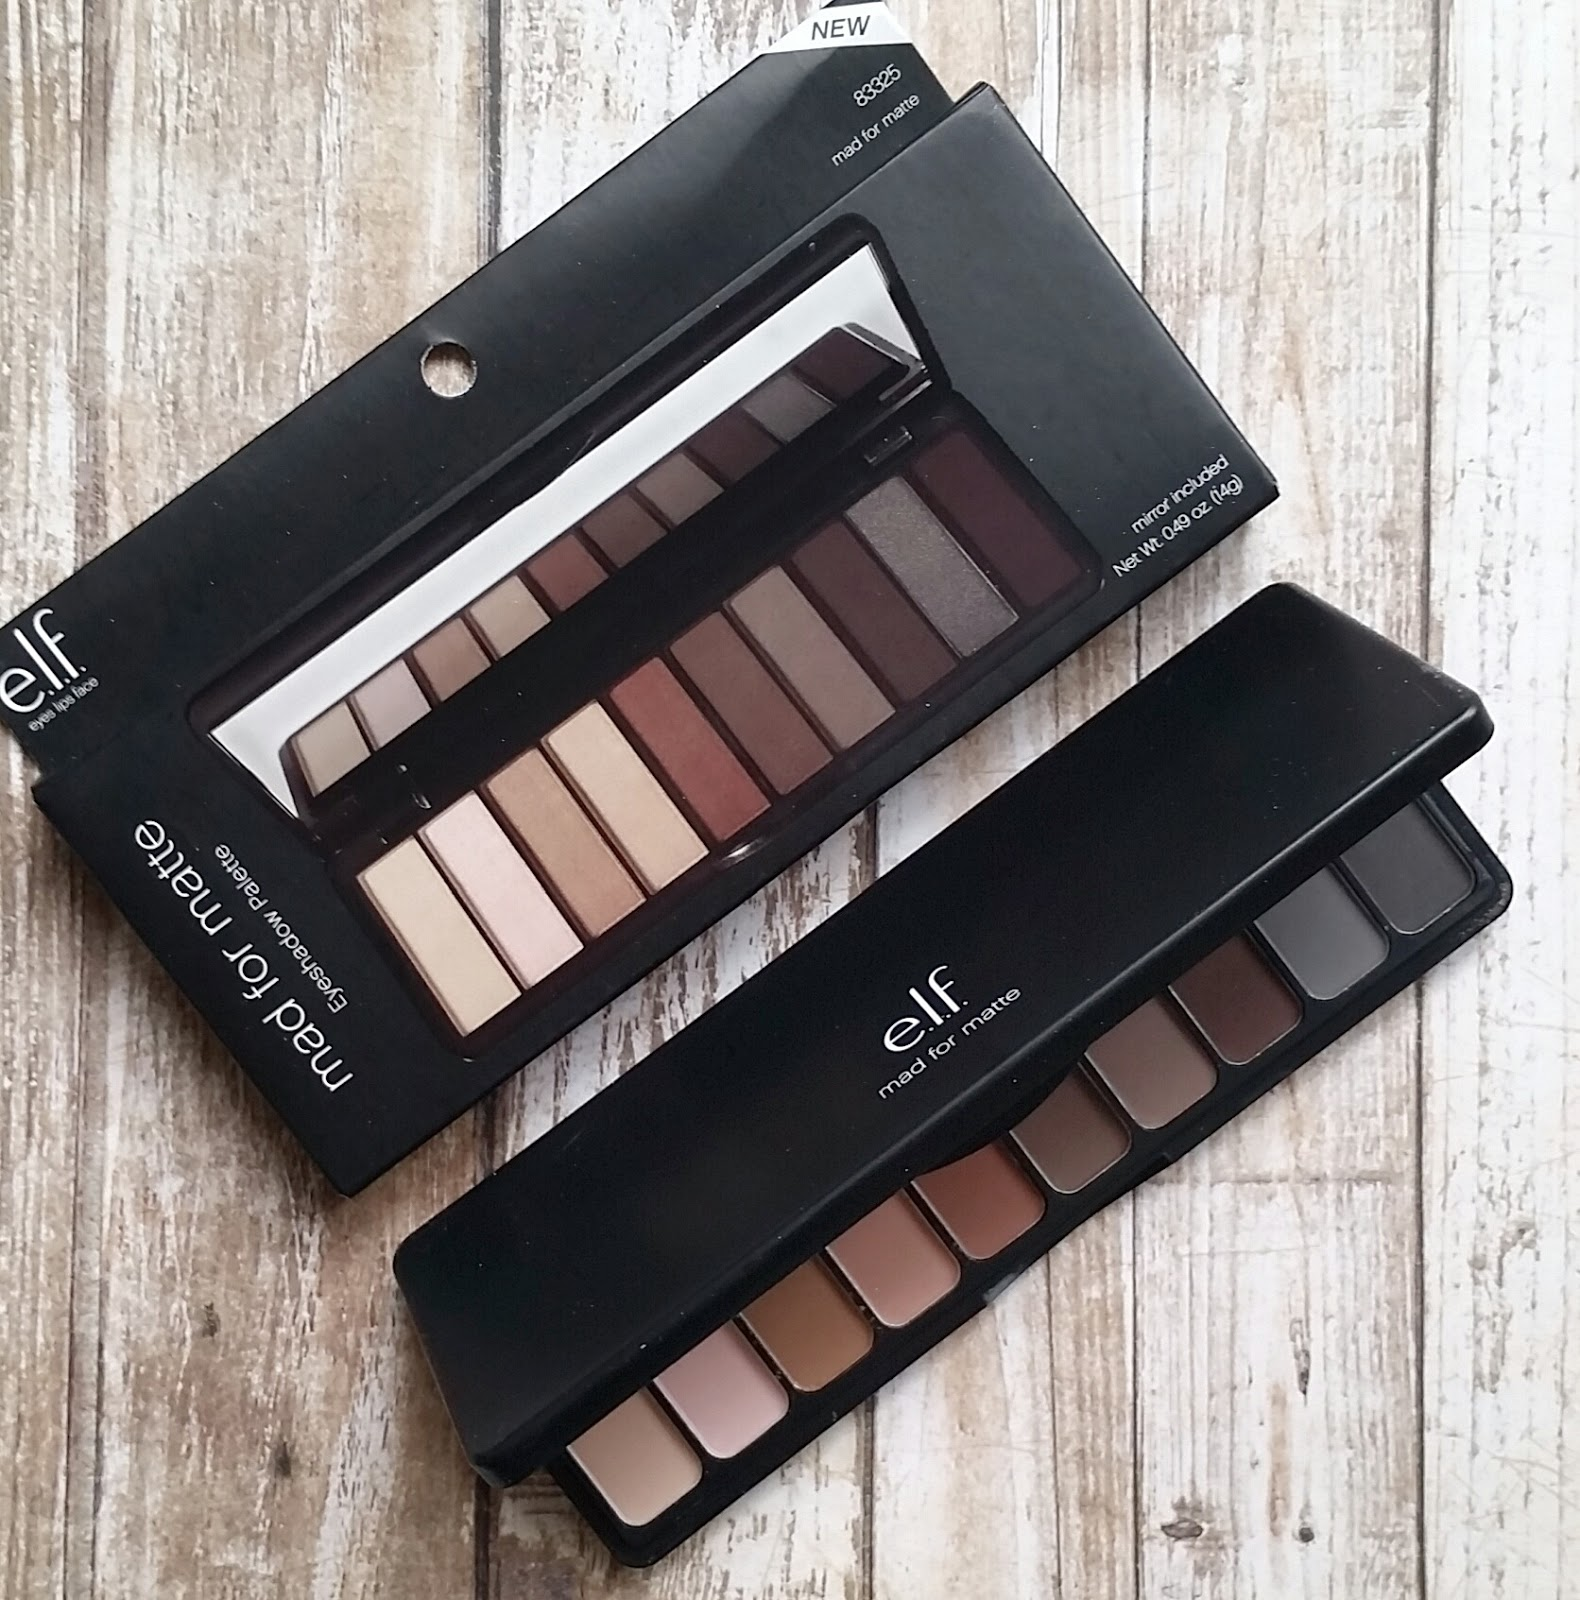 e.l.f. Mad For Matte Eyeshadow Palette Review